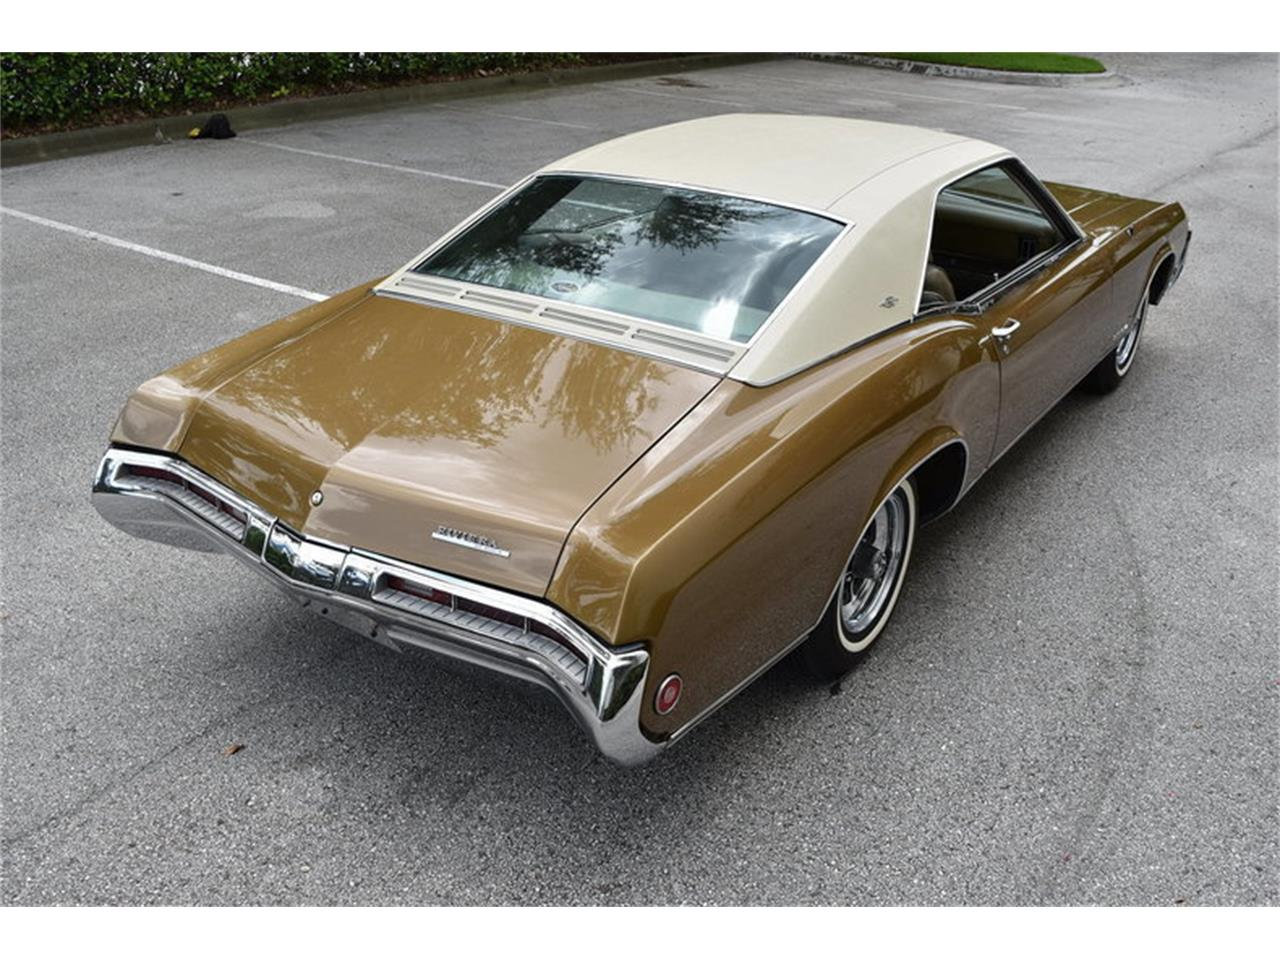 Large Picture of 1969 Buick Riviera located in Florida Auction Vehicle Offered by SunCoast Auto Auction - ONHO